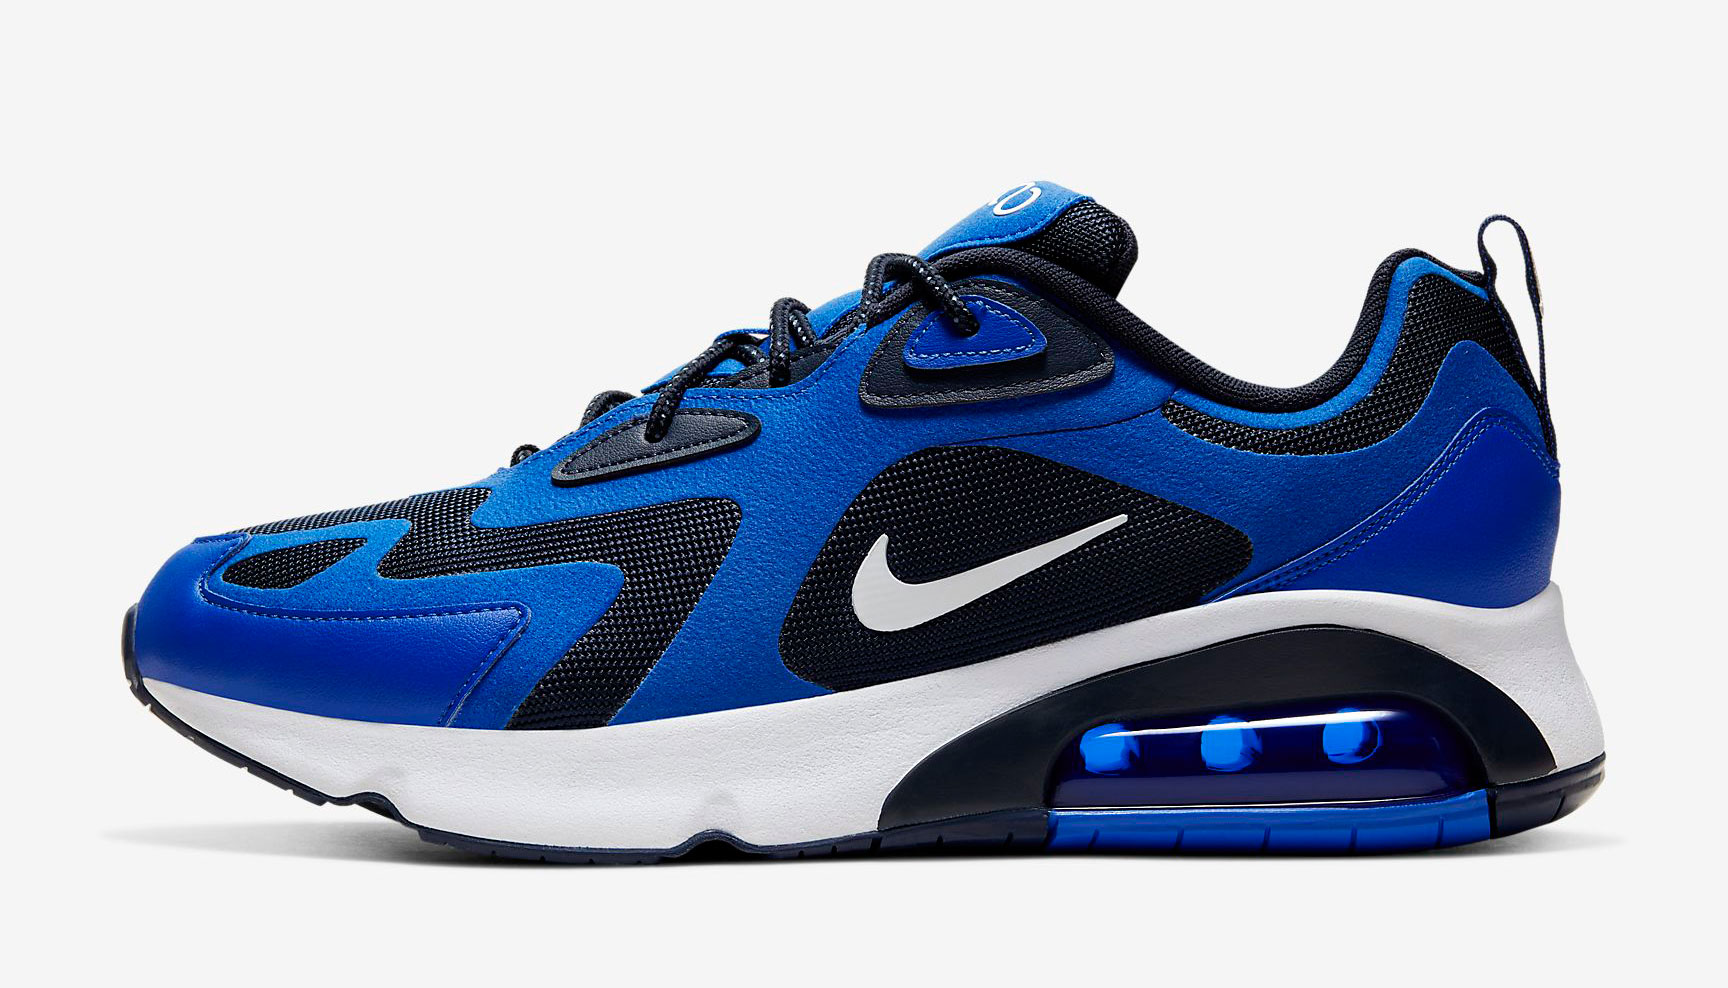 nike-air-max-200-racer-blue-release-date